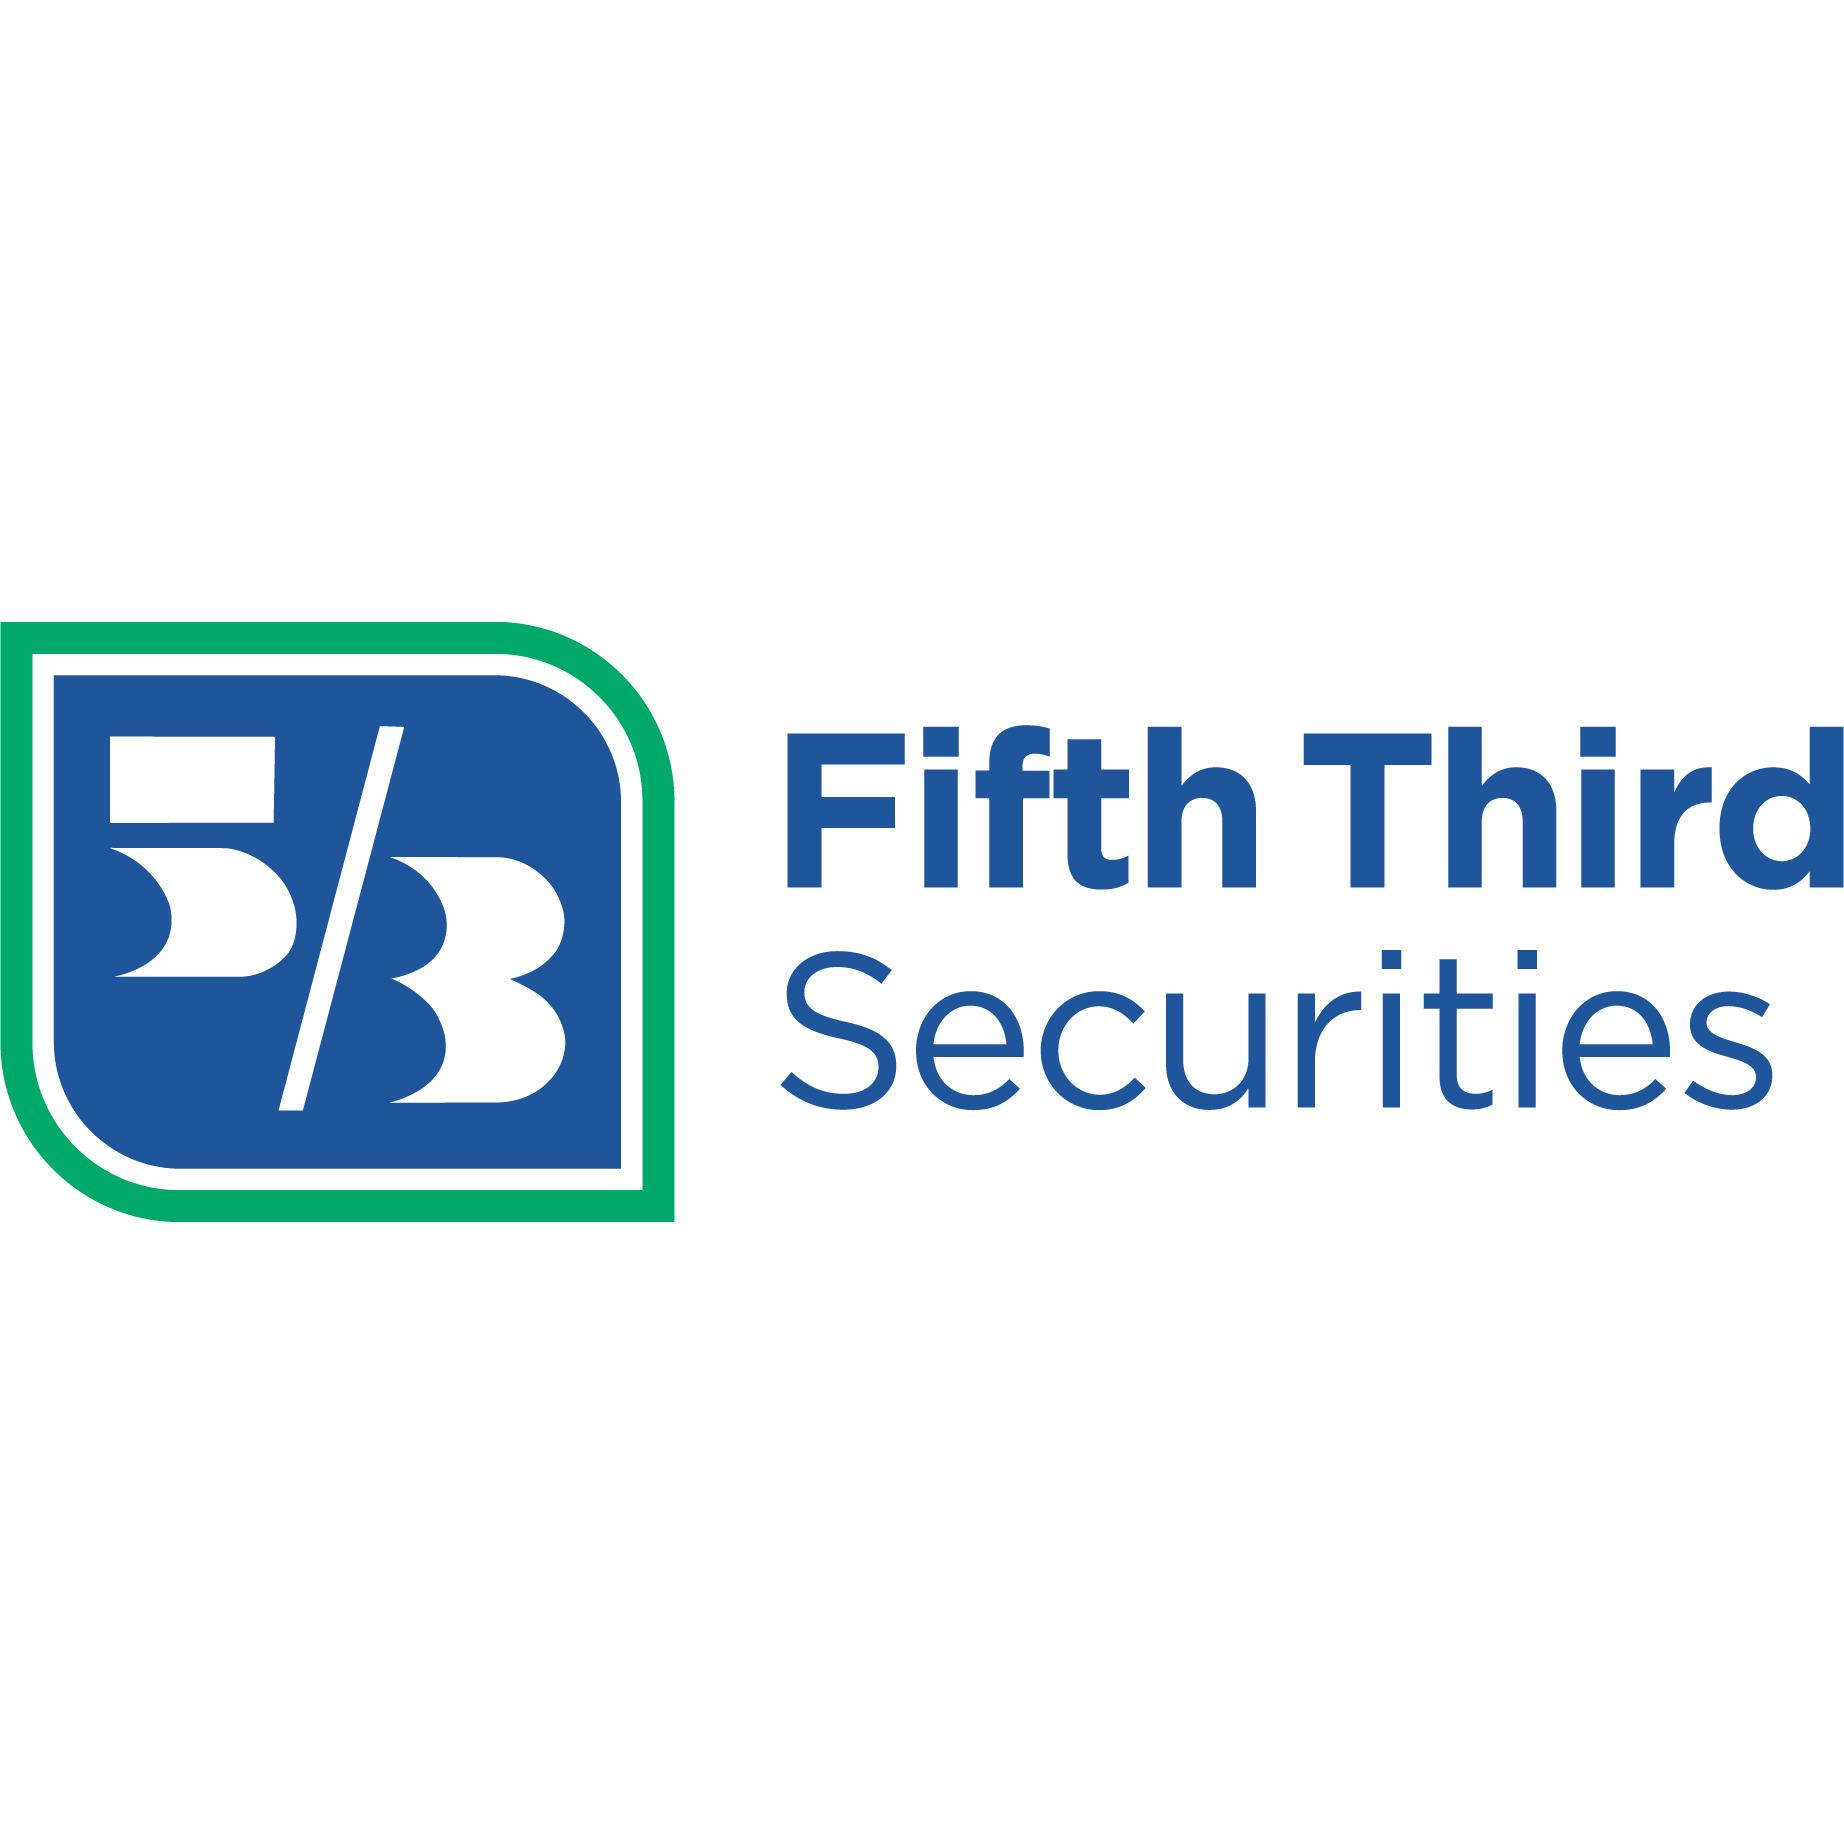 Fifth Third Securities - Alex Linderman